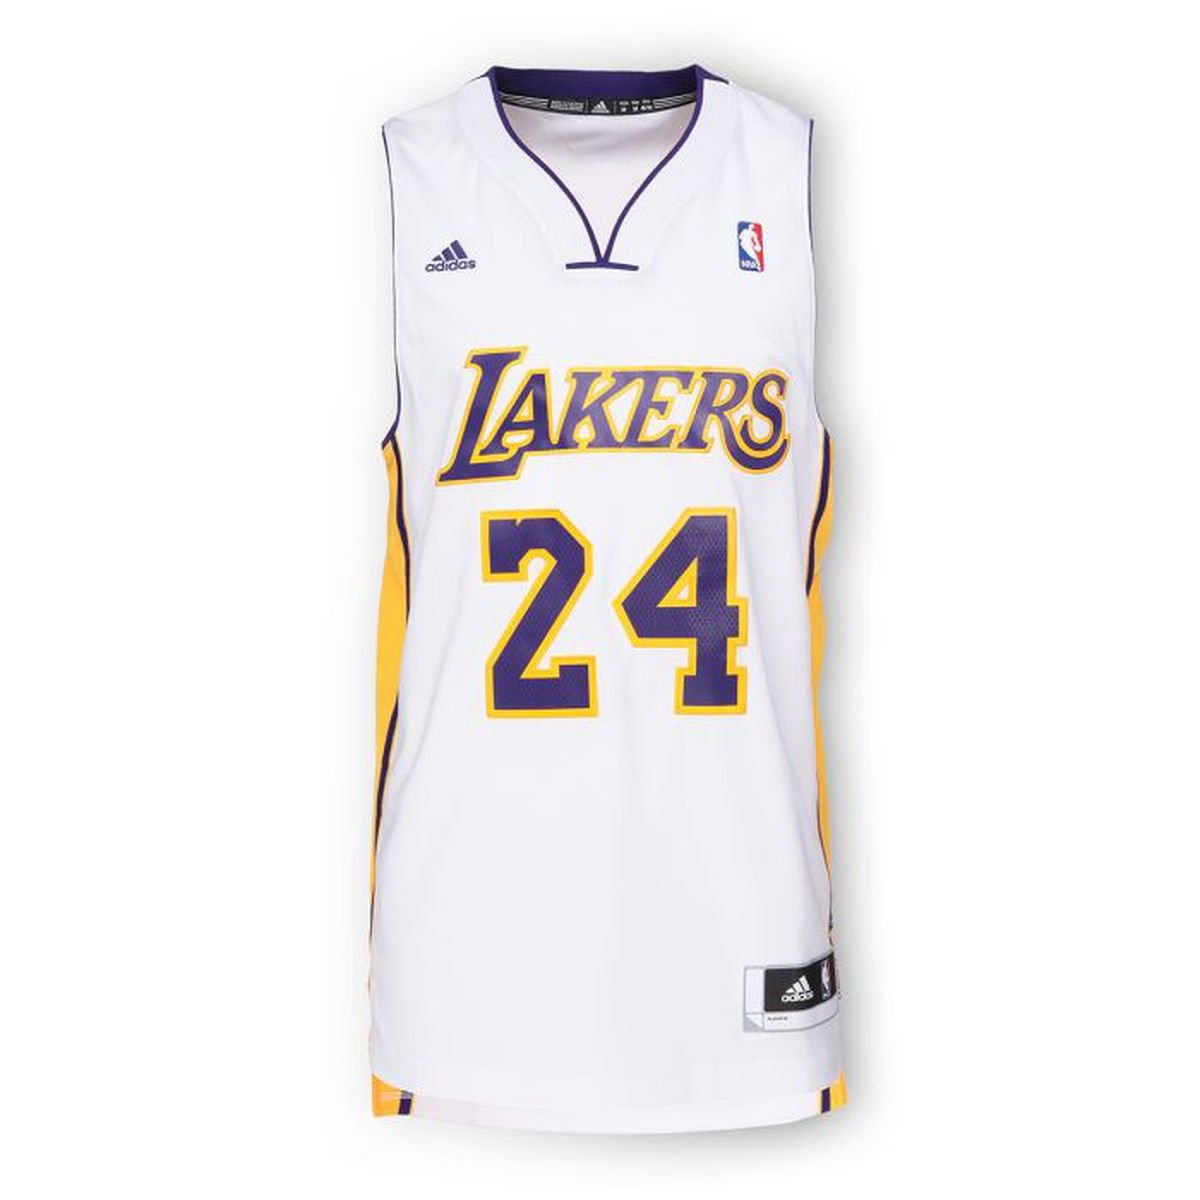 Pas Adidas Basket Bryant Prix Homme Cher Maillot Nba Lakers xRfRwqrp7H